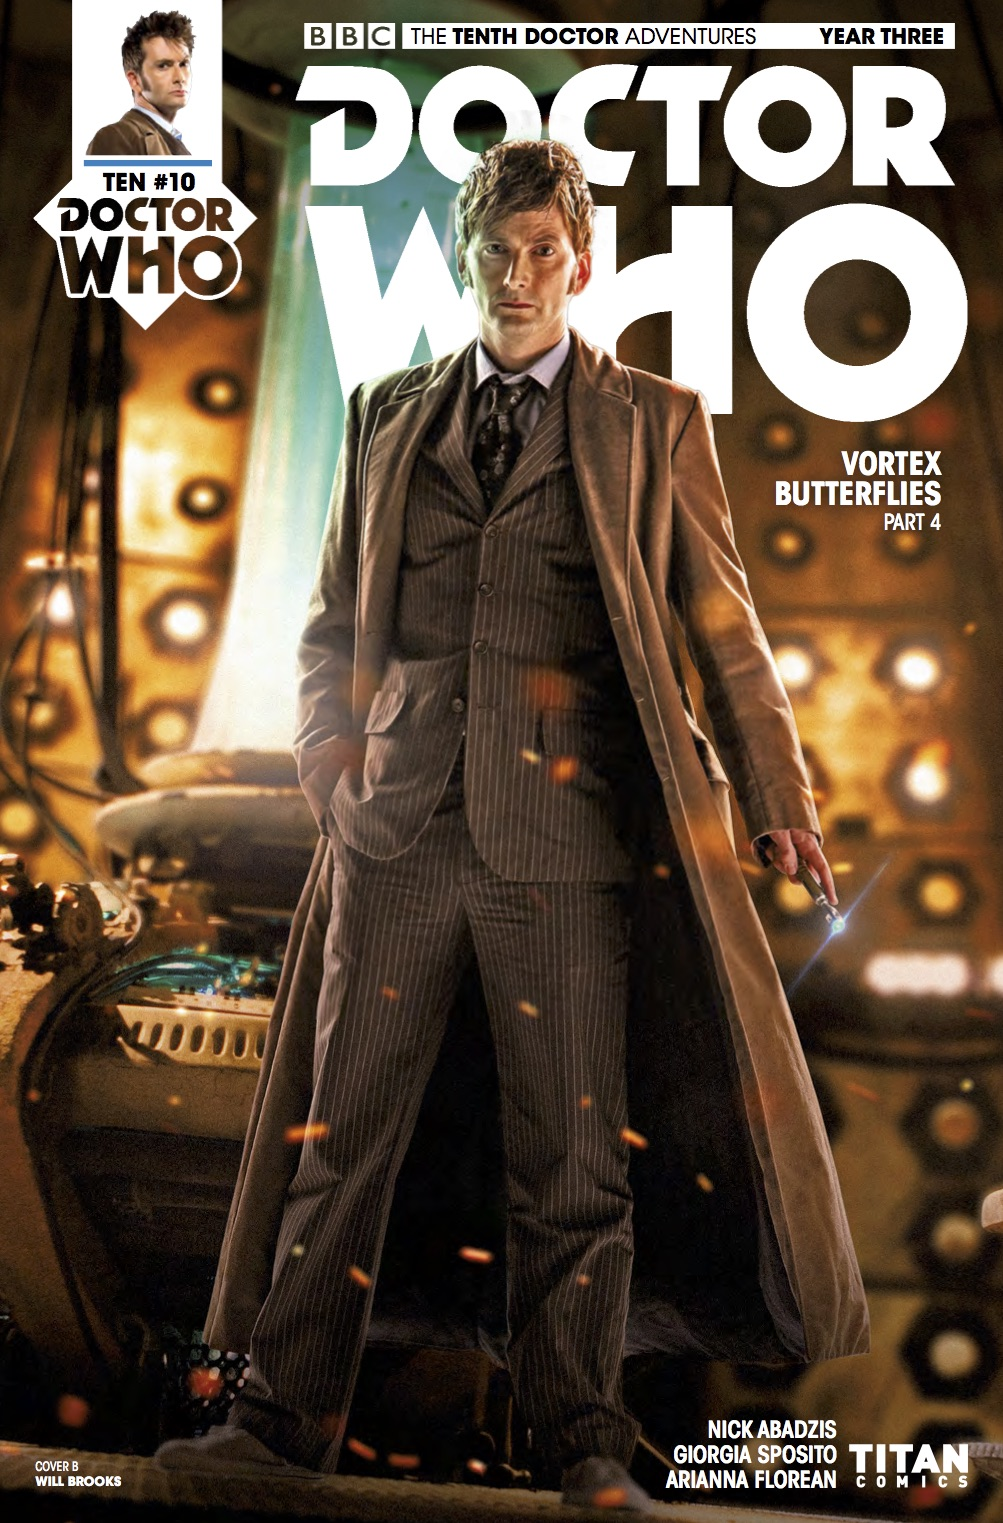 TENTH DOCTOR 3 10 - Cover B (Credit: Titan )